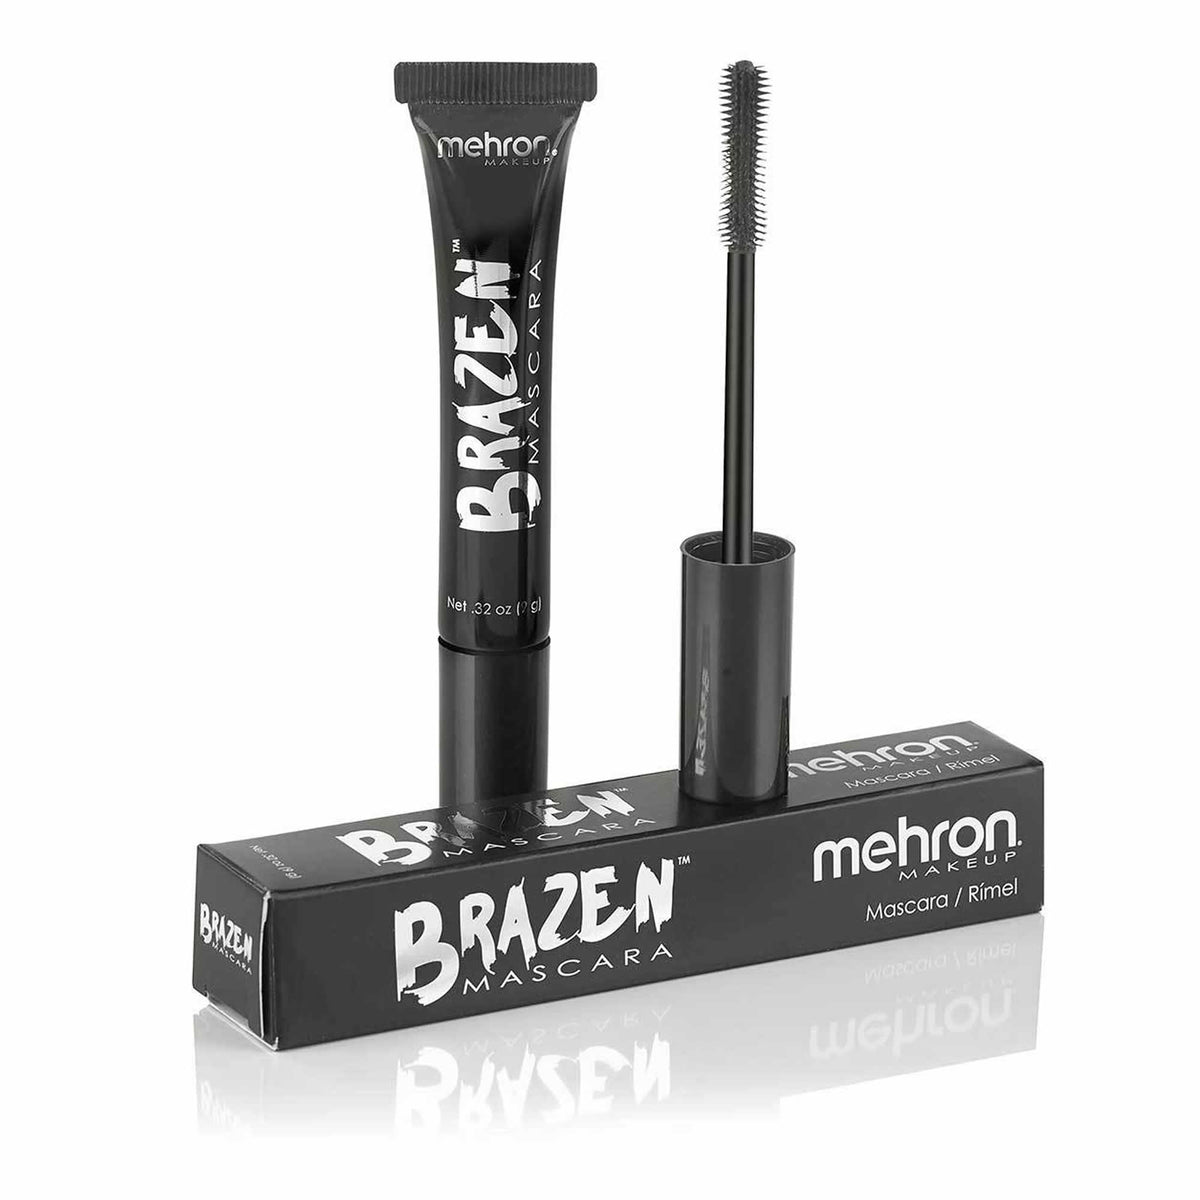 Mehron Brazen Mascara - Red Carpet FX - Professional Makeup